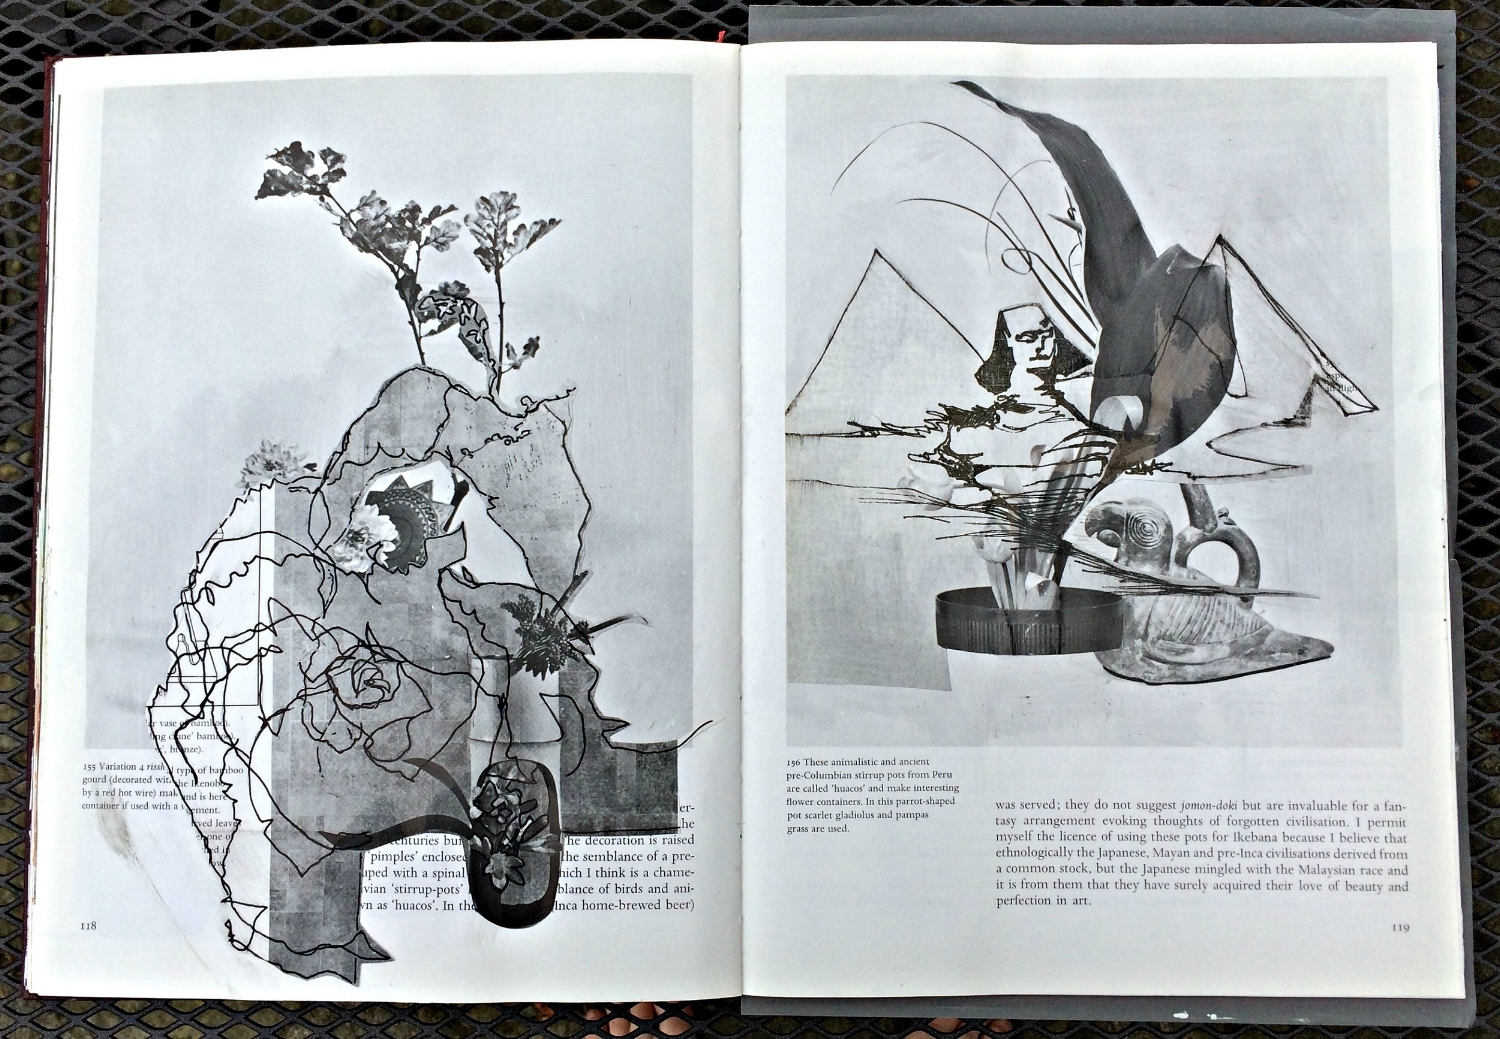 Altered Book (Japanese Flower Arranging): unsighted sketches layered